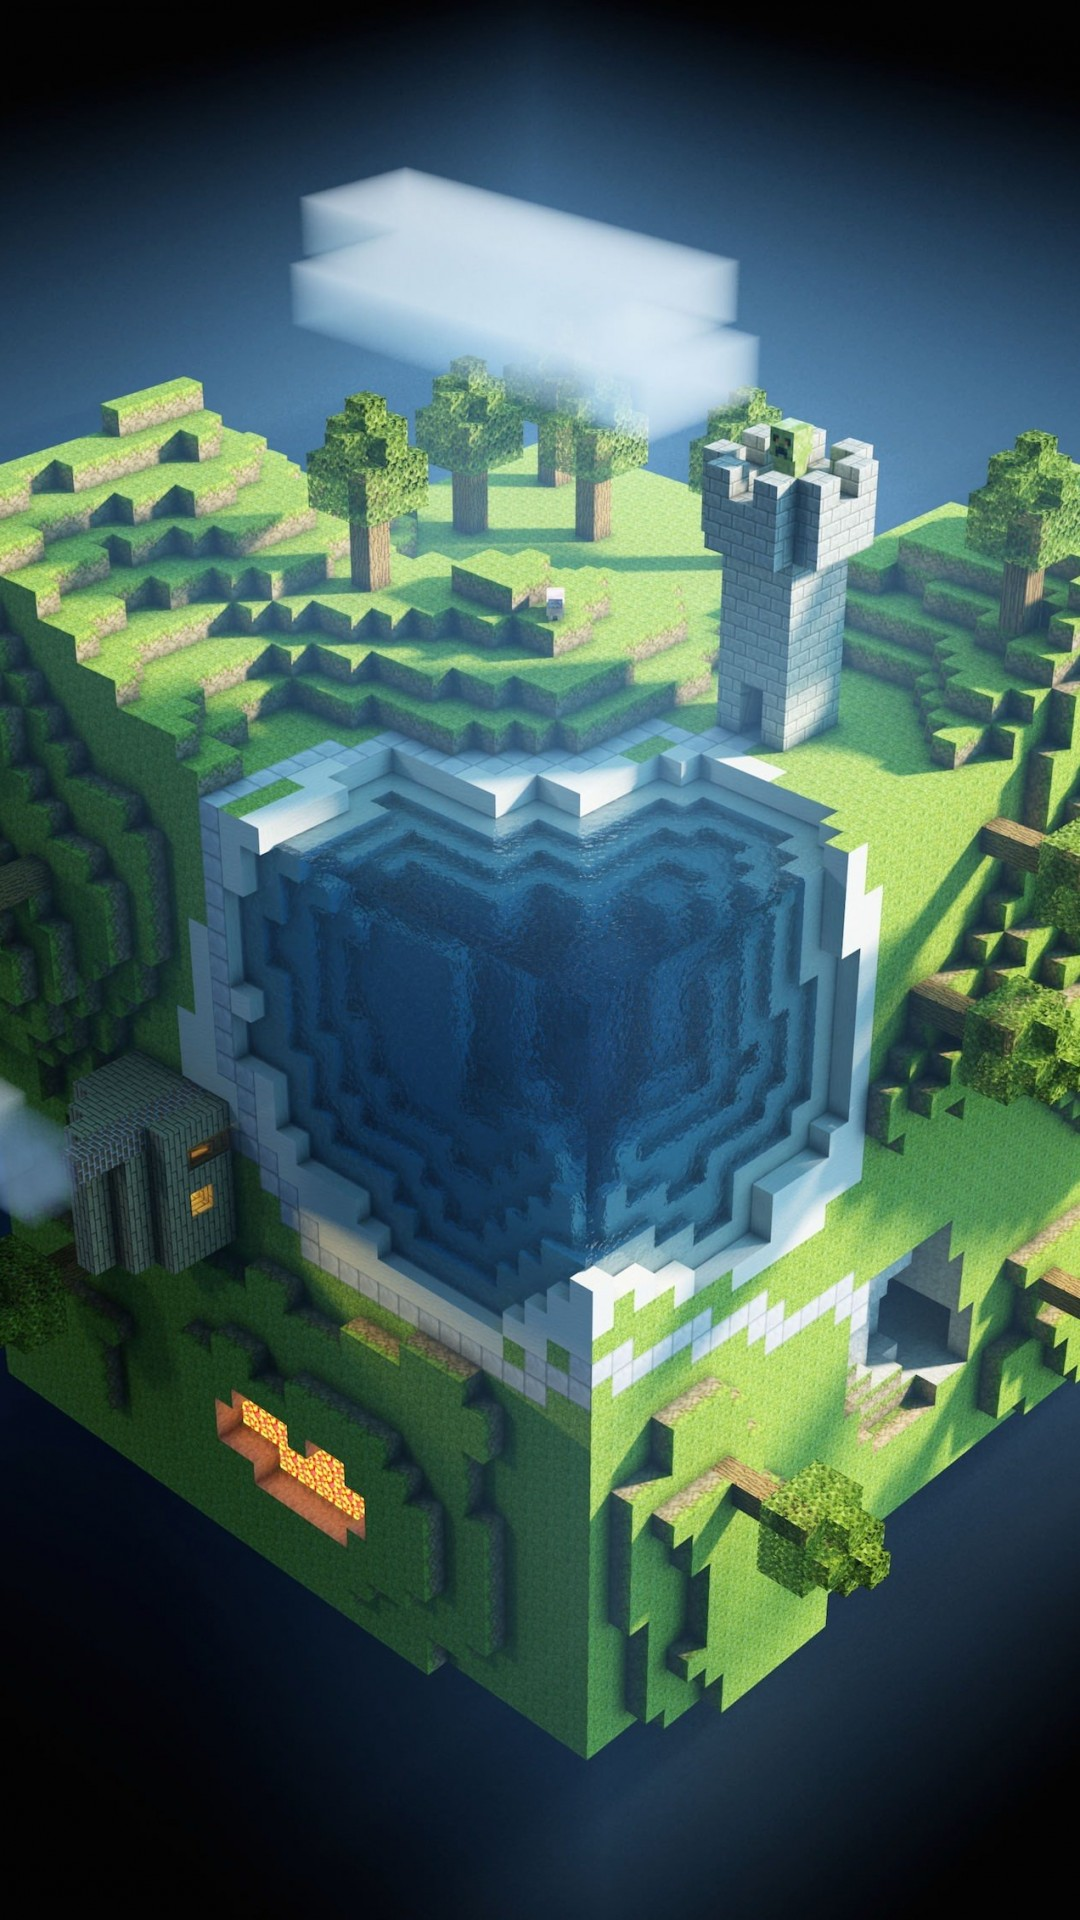 Planet Minecraft Wallpaper for SONY Xperia Z2